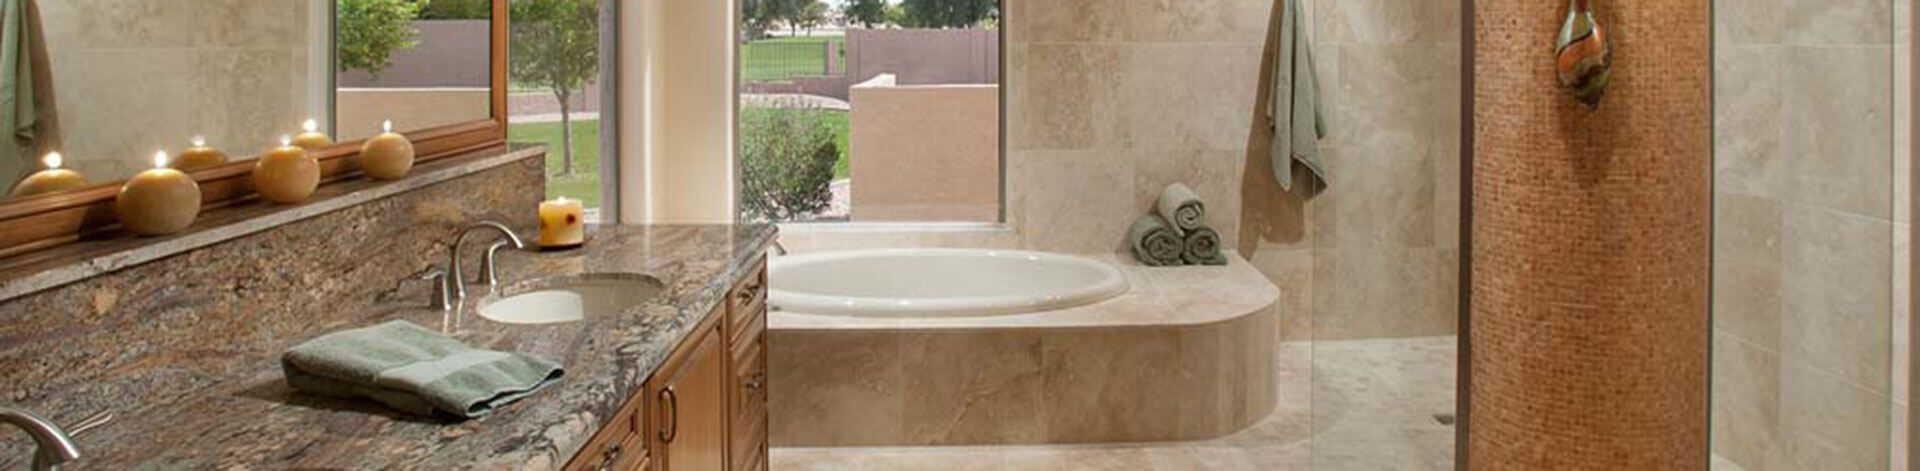 Phoenix Bathroom Remodel Custom Bathroom Remodeling In Phoenix & Scottsdale  Republic West Remodeling Review